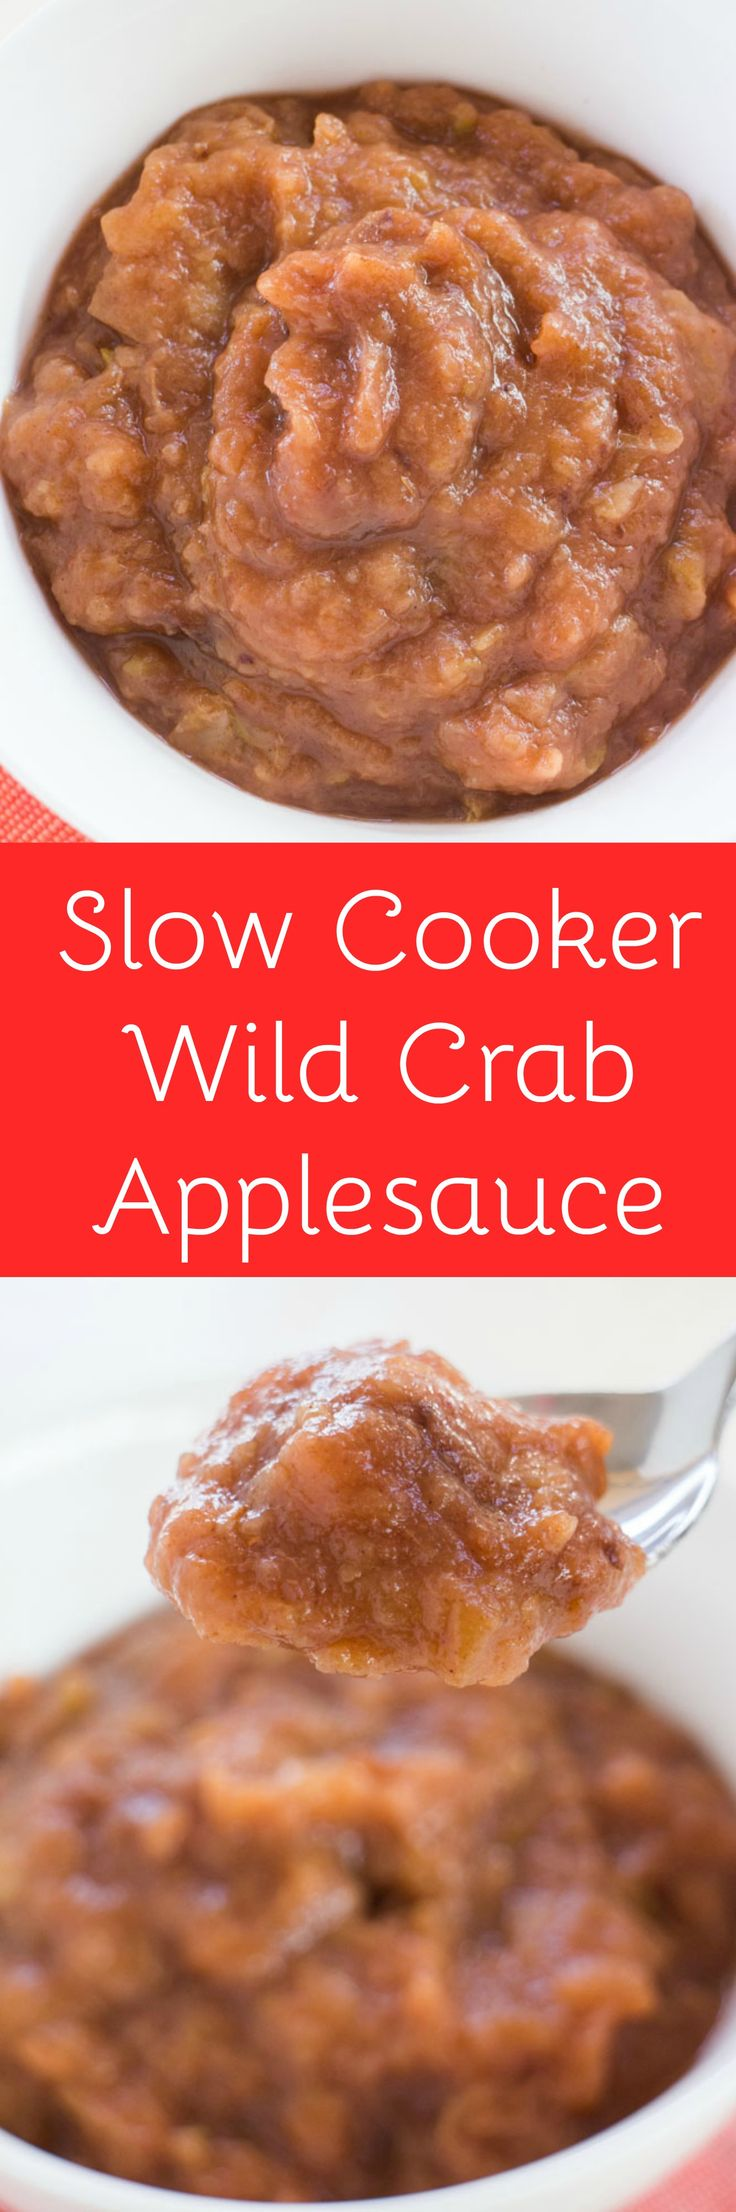 This is a easy applesauce recipe to make in your slow cooker with your wild crab apples! You don't need to peel the apples! Even better there's no sugar in this as we use maple syrup instead!